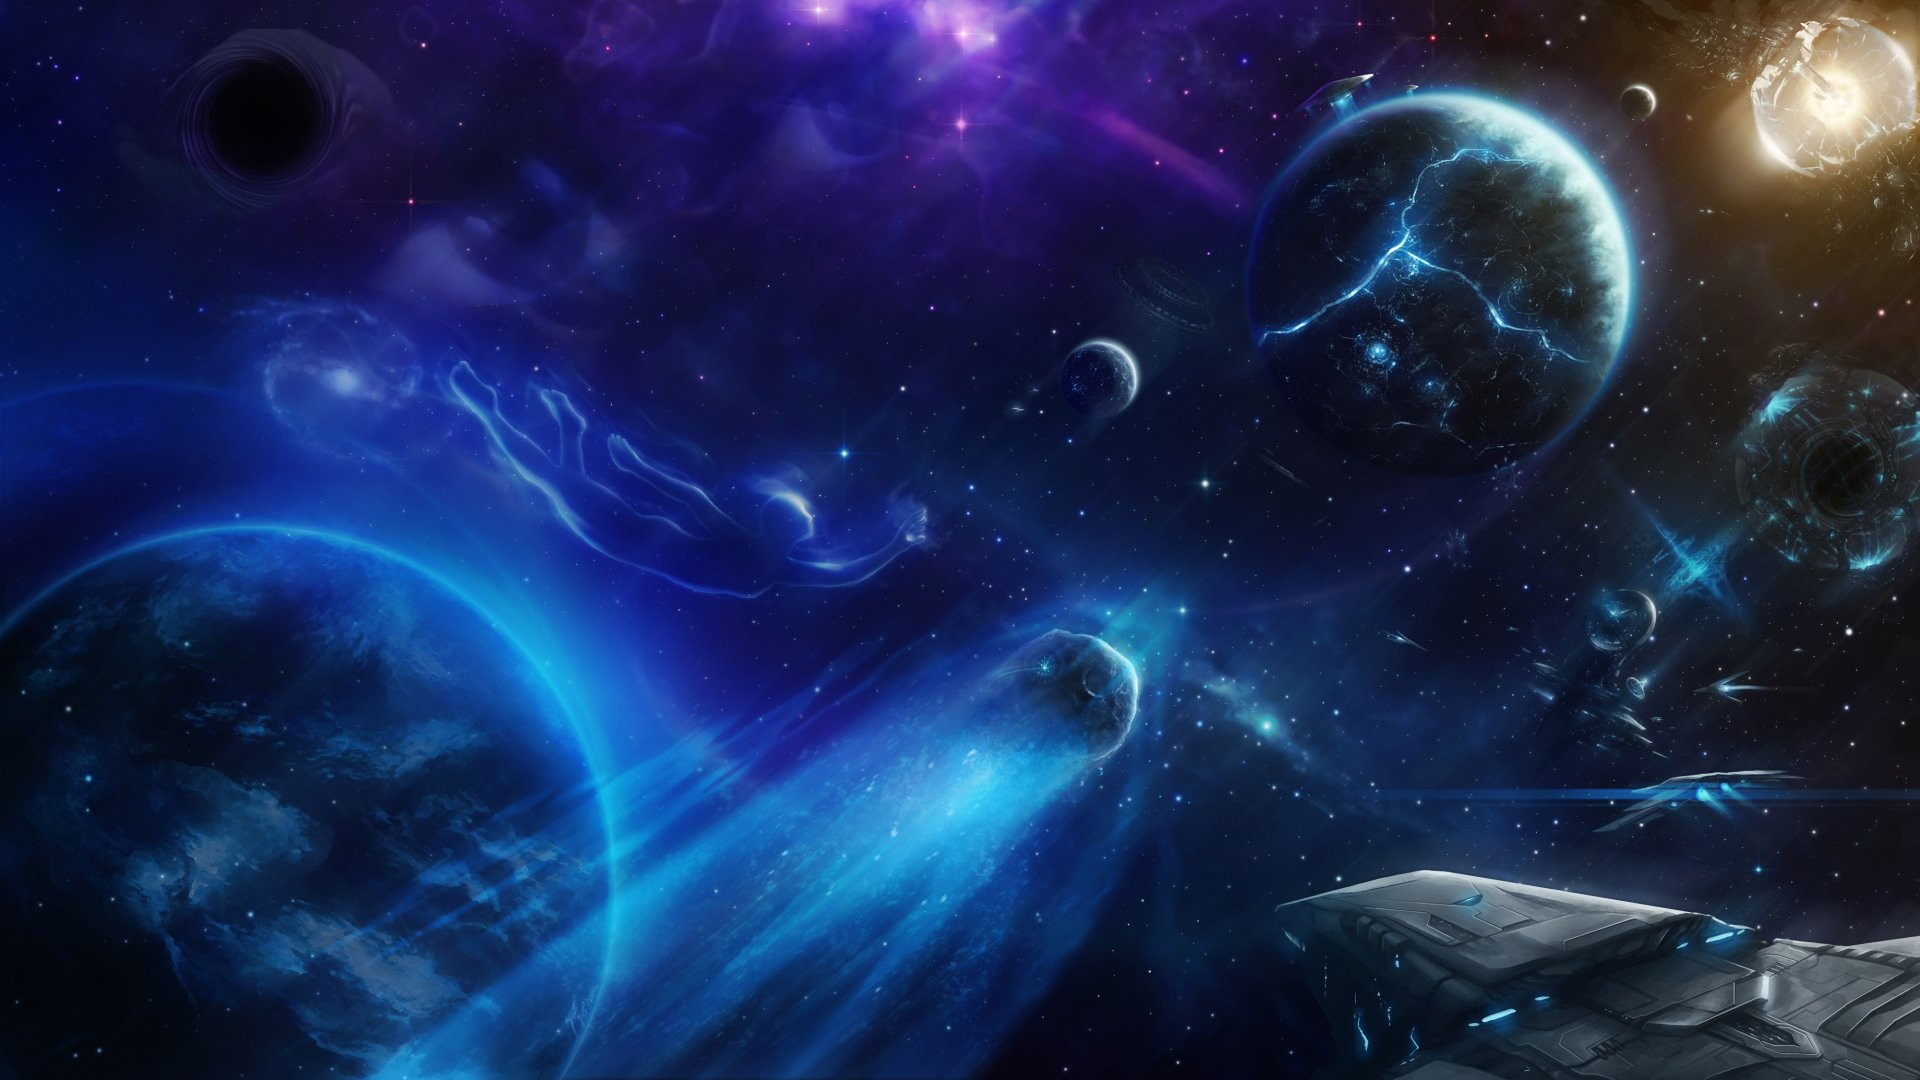 Planets and spaceship 4k ultra hd wallpaper background - Blue space 4k wallpaper ...